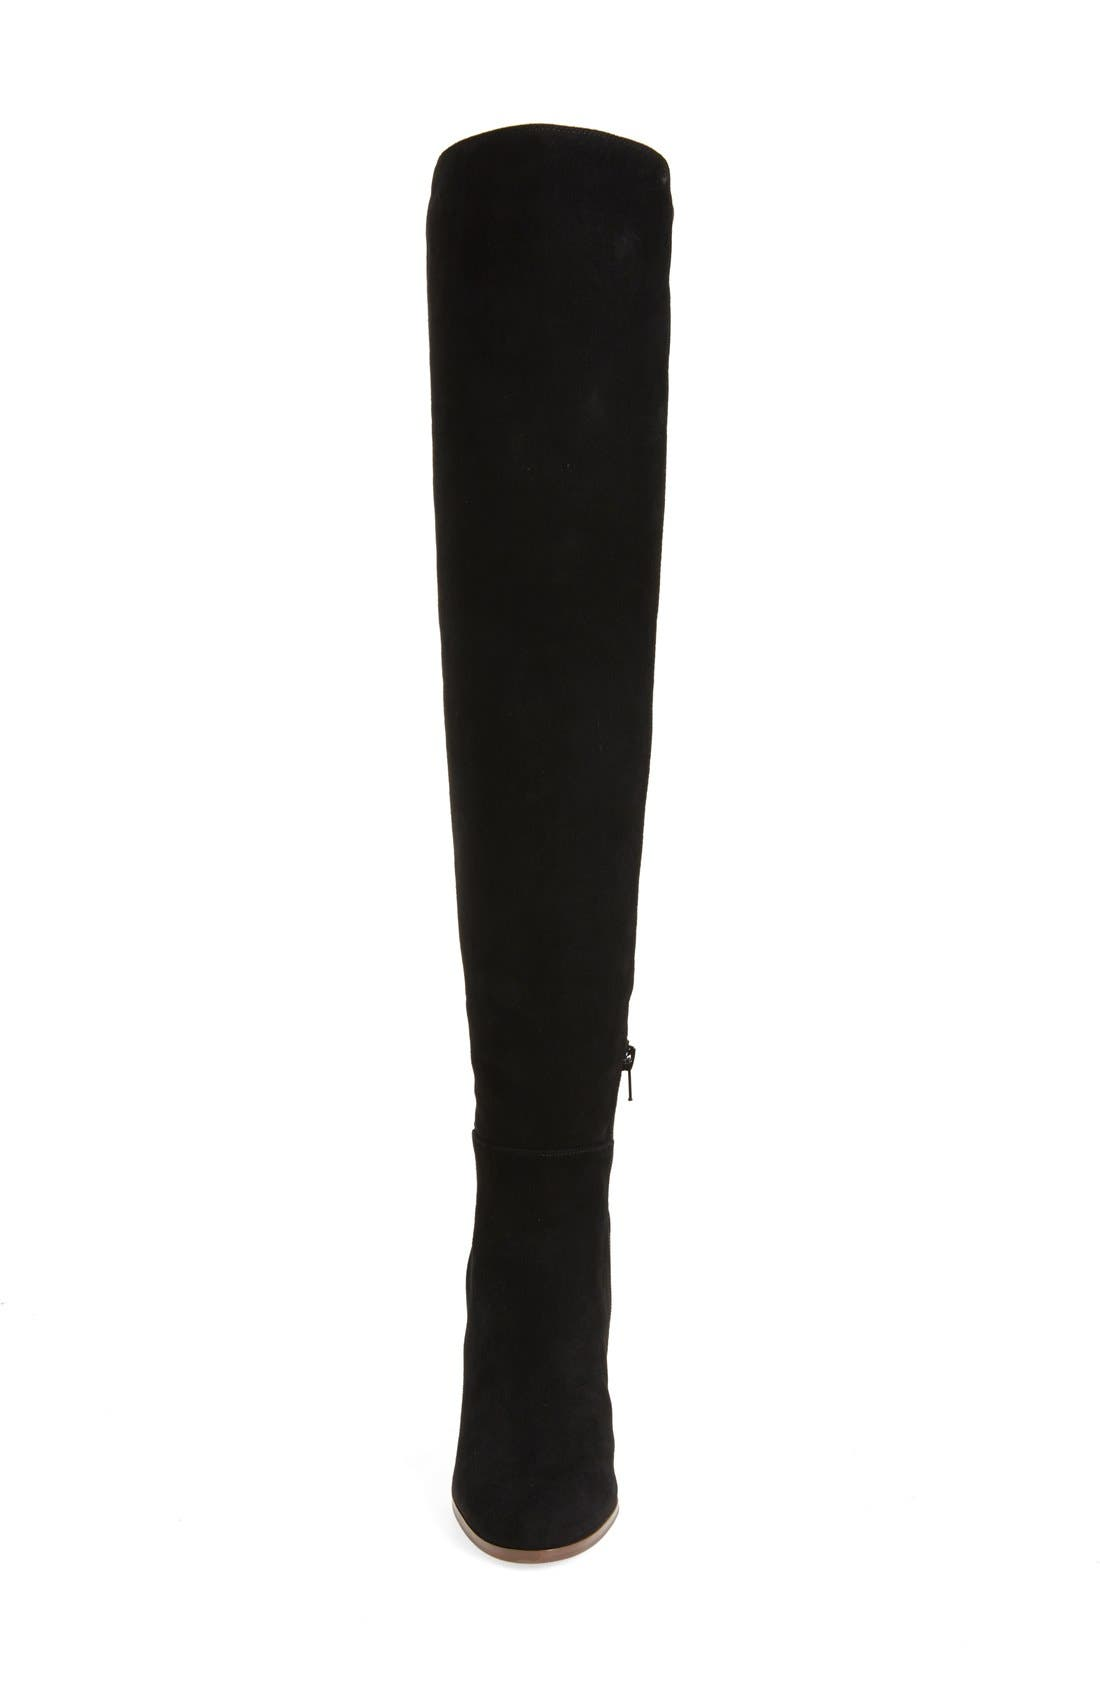 Alternate Image 3  - Vince Camuto 'Granta' Over the Knee Wedge Boot (Women)